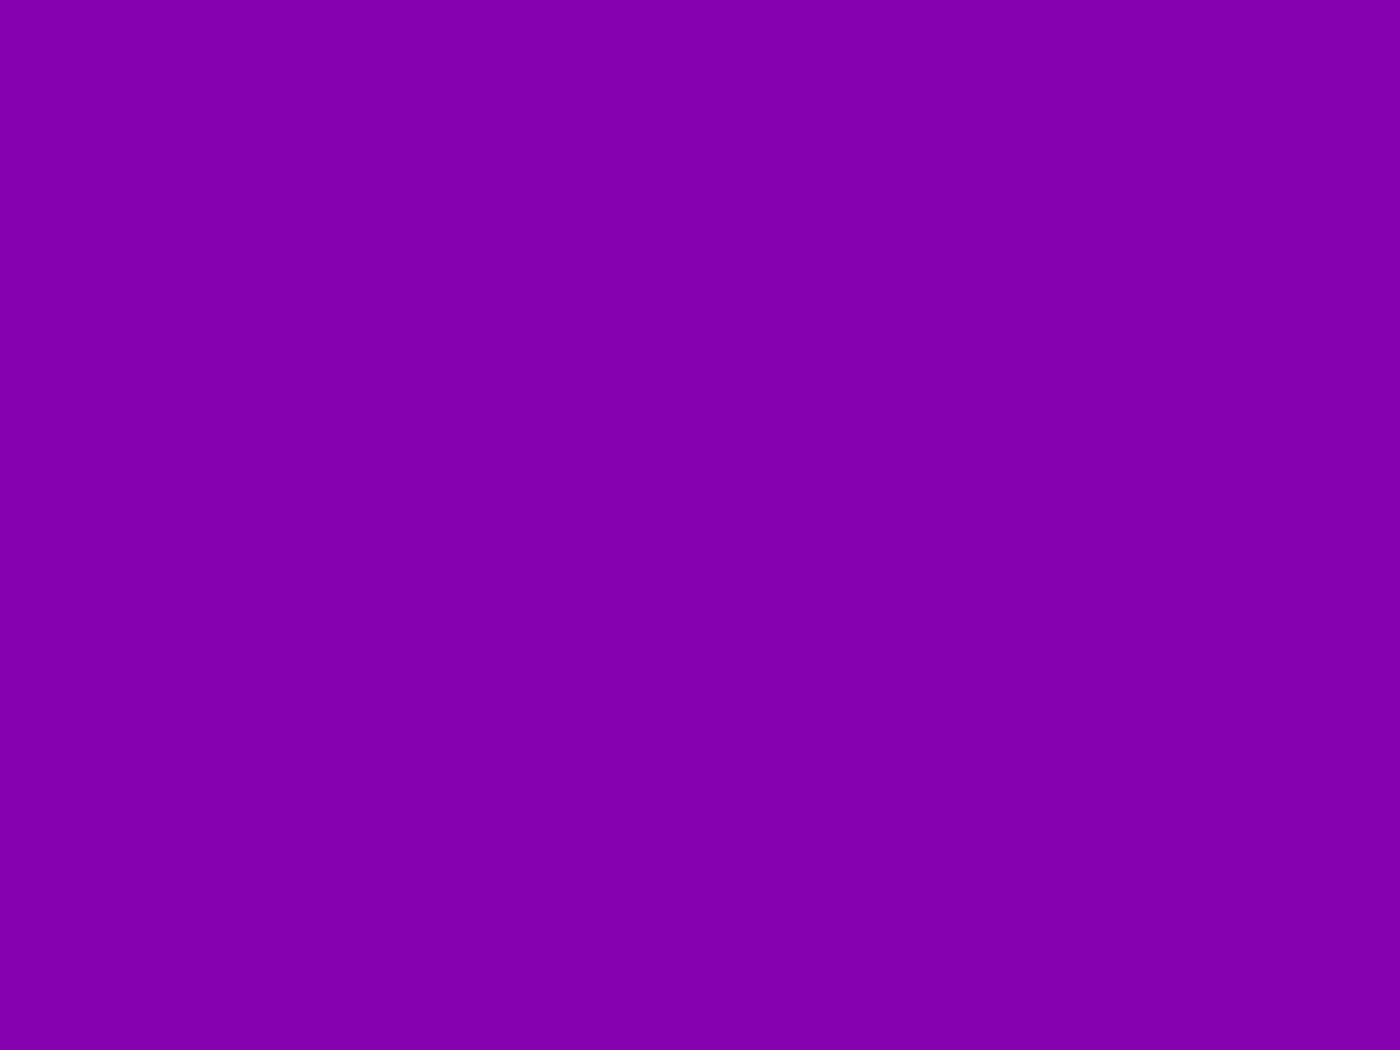 1400x1050 Violet RYB Solid Color Background